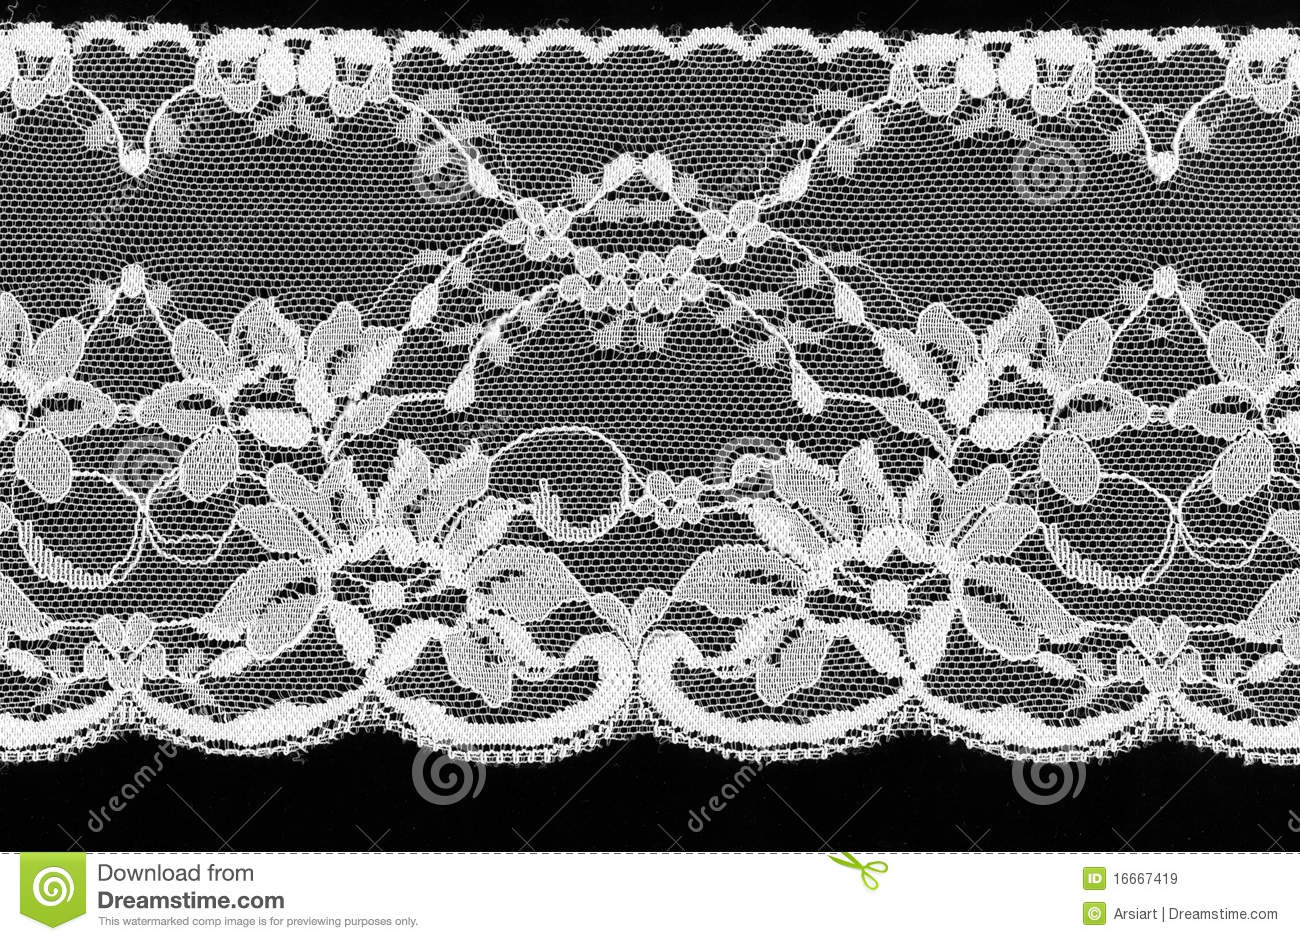 White lace on a black background.